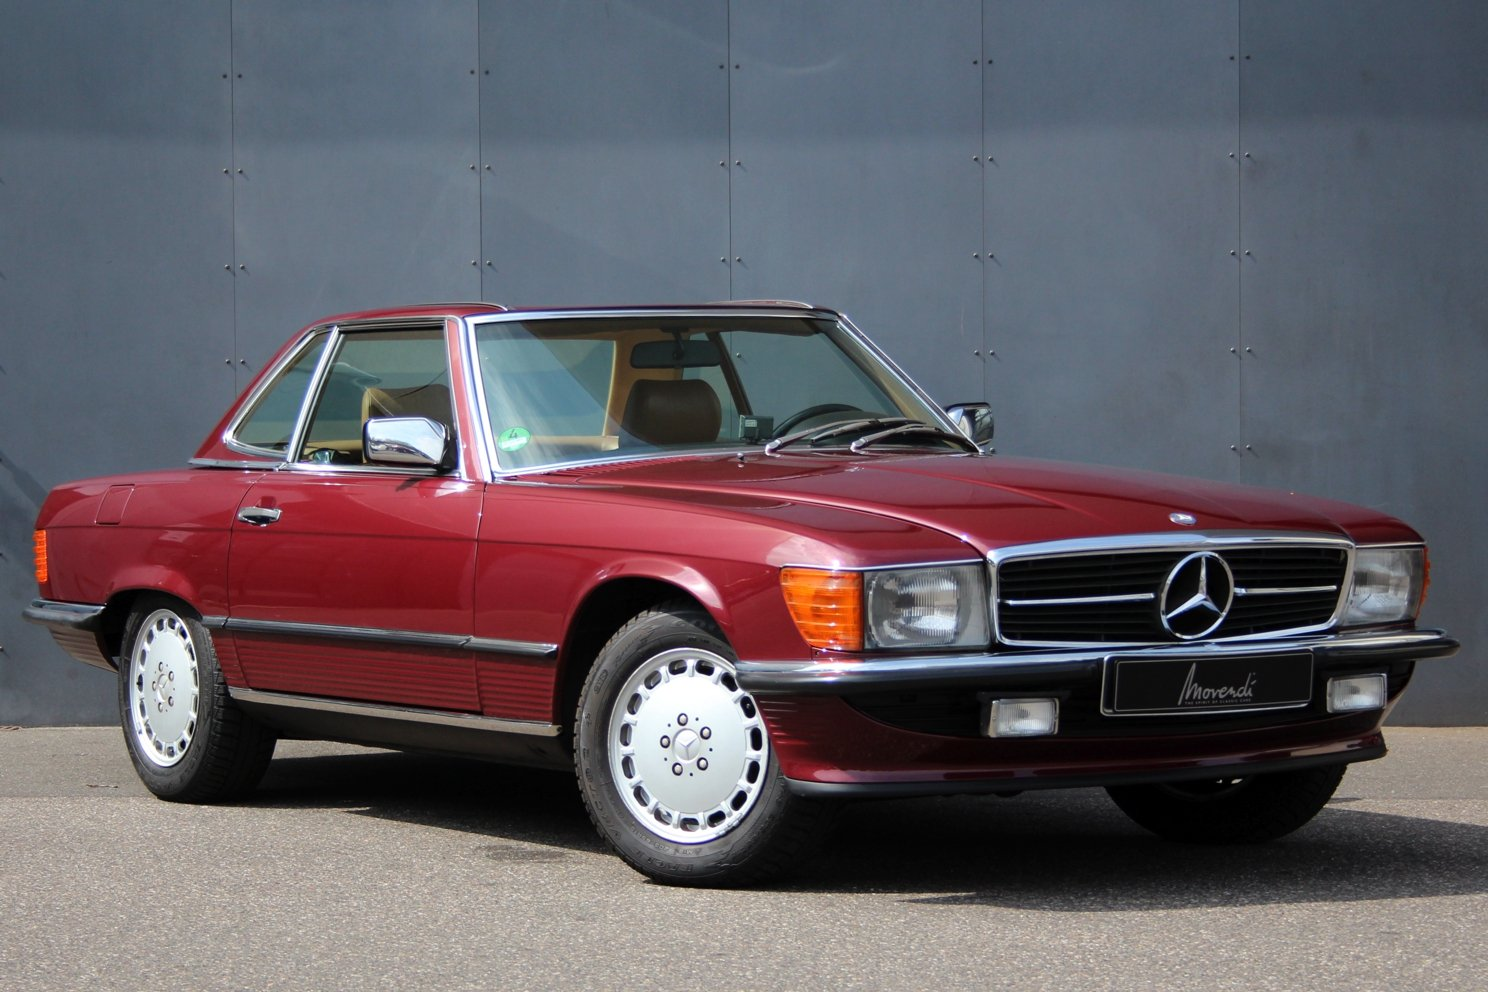 1986 Mercedes-Benz 300 SL LHD For Sale (picture 1 of 6)